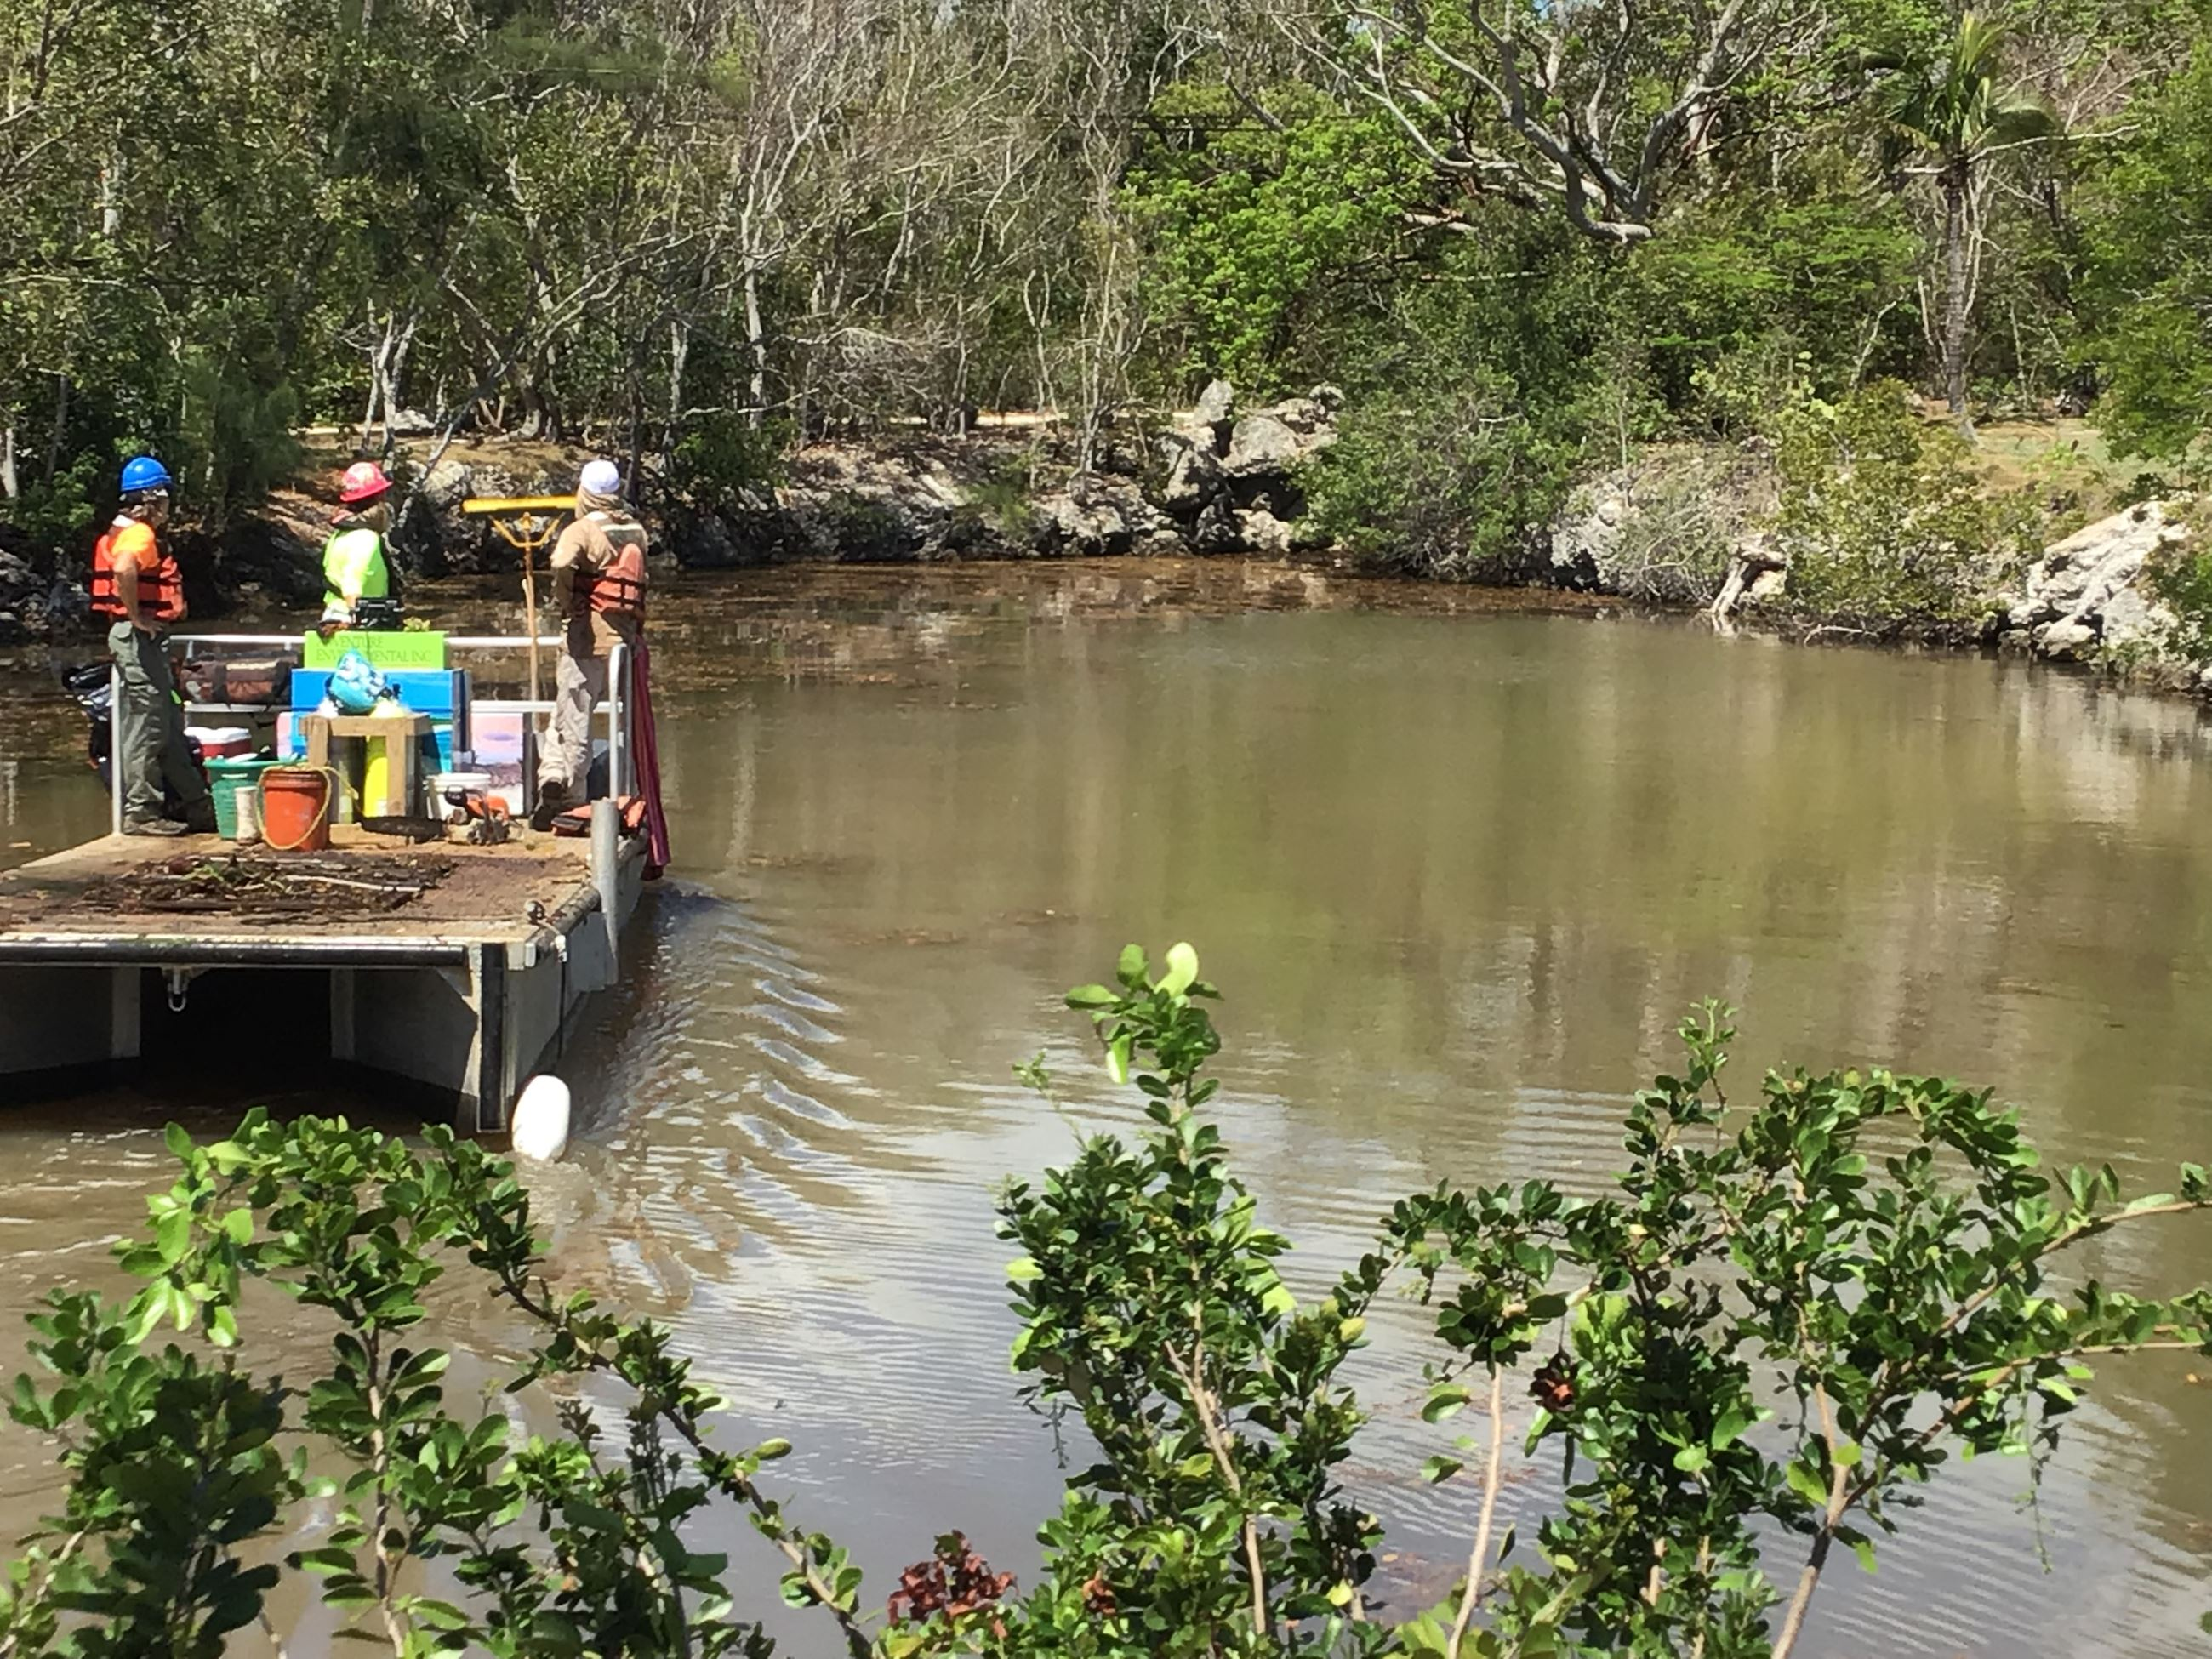 A canal is cleaned in Key Largo as part of the project.